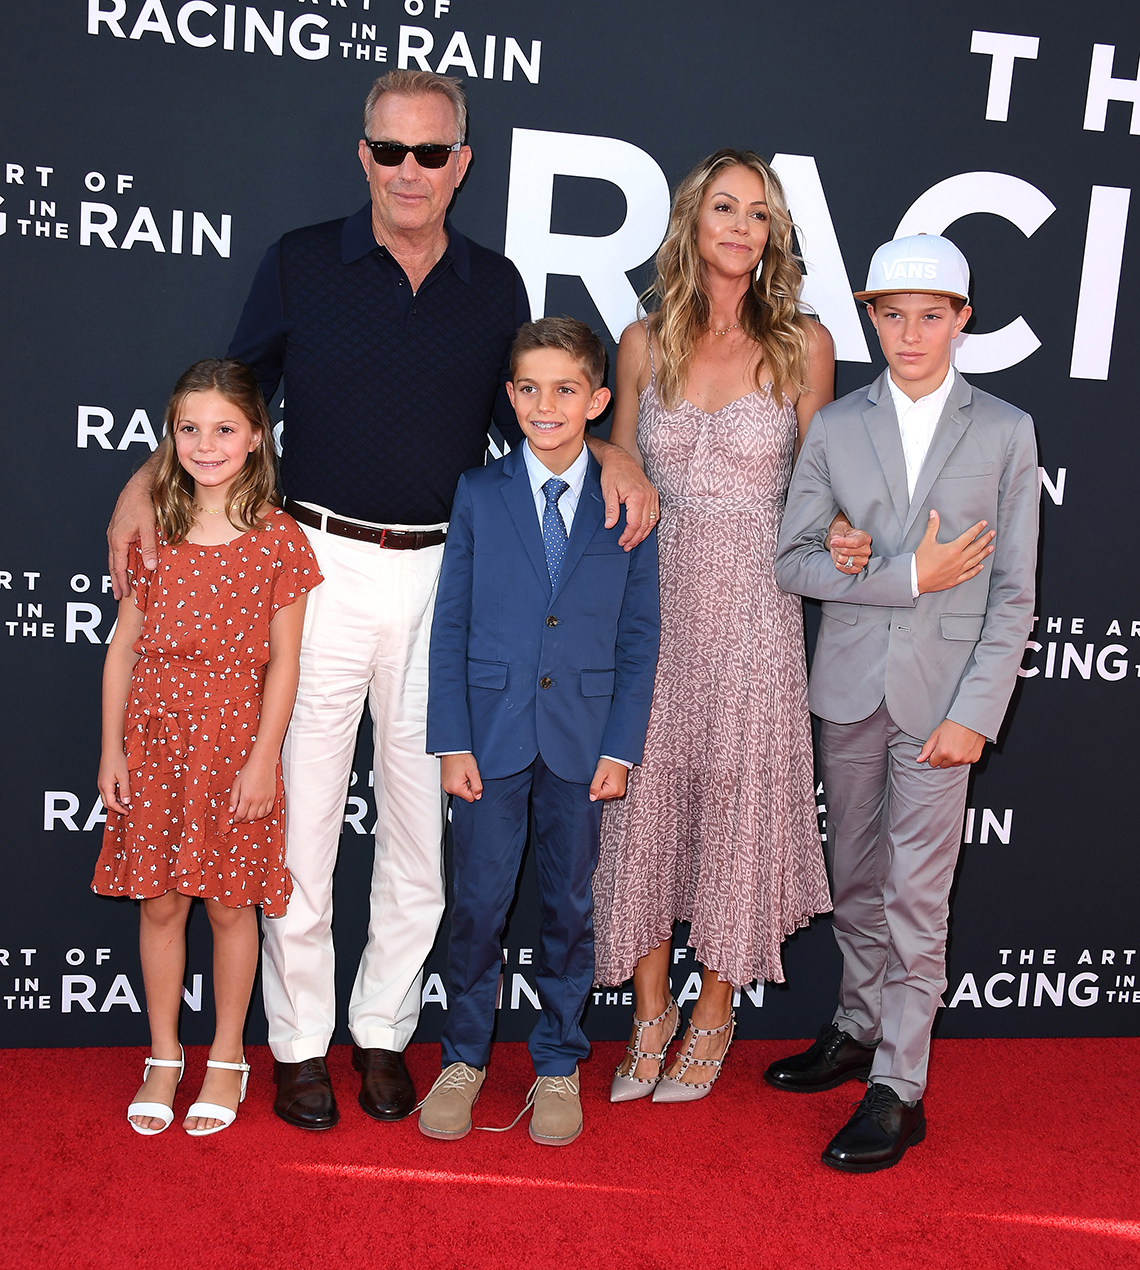 kevin costner his wife christine baumgartner and their three kids stand on the red carpet at an event